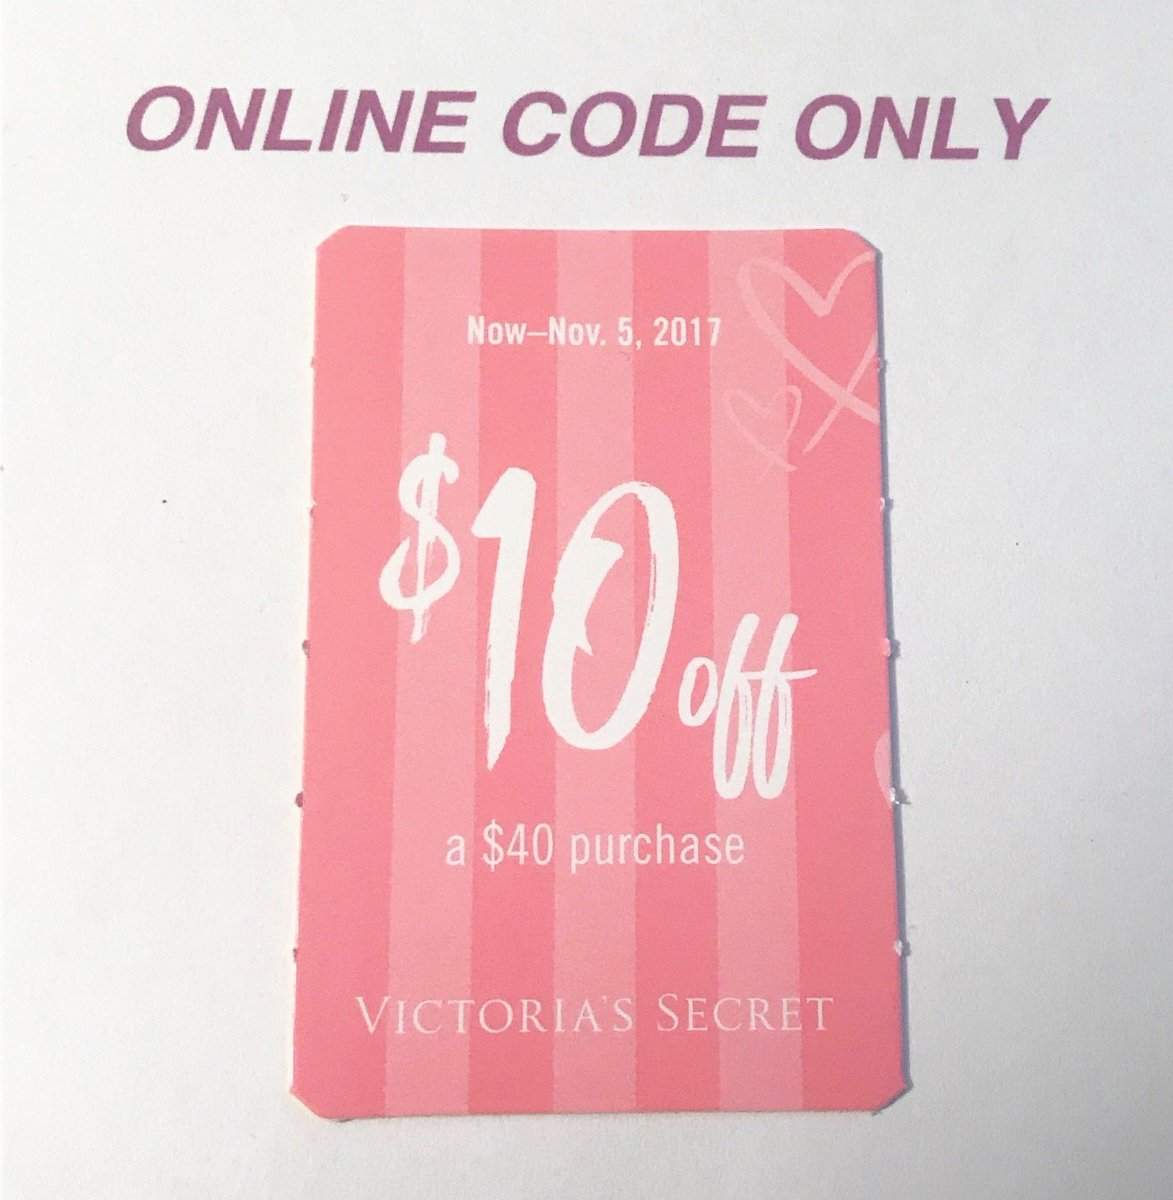 42953f628a7d5 Gift Cards & Coupons on Twitter: